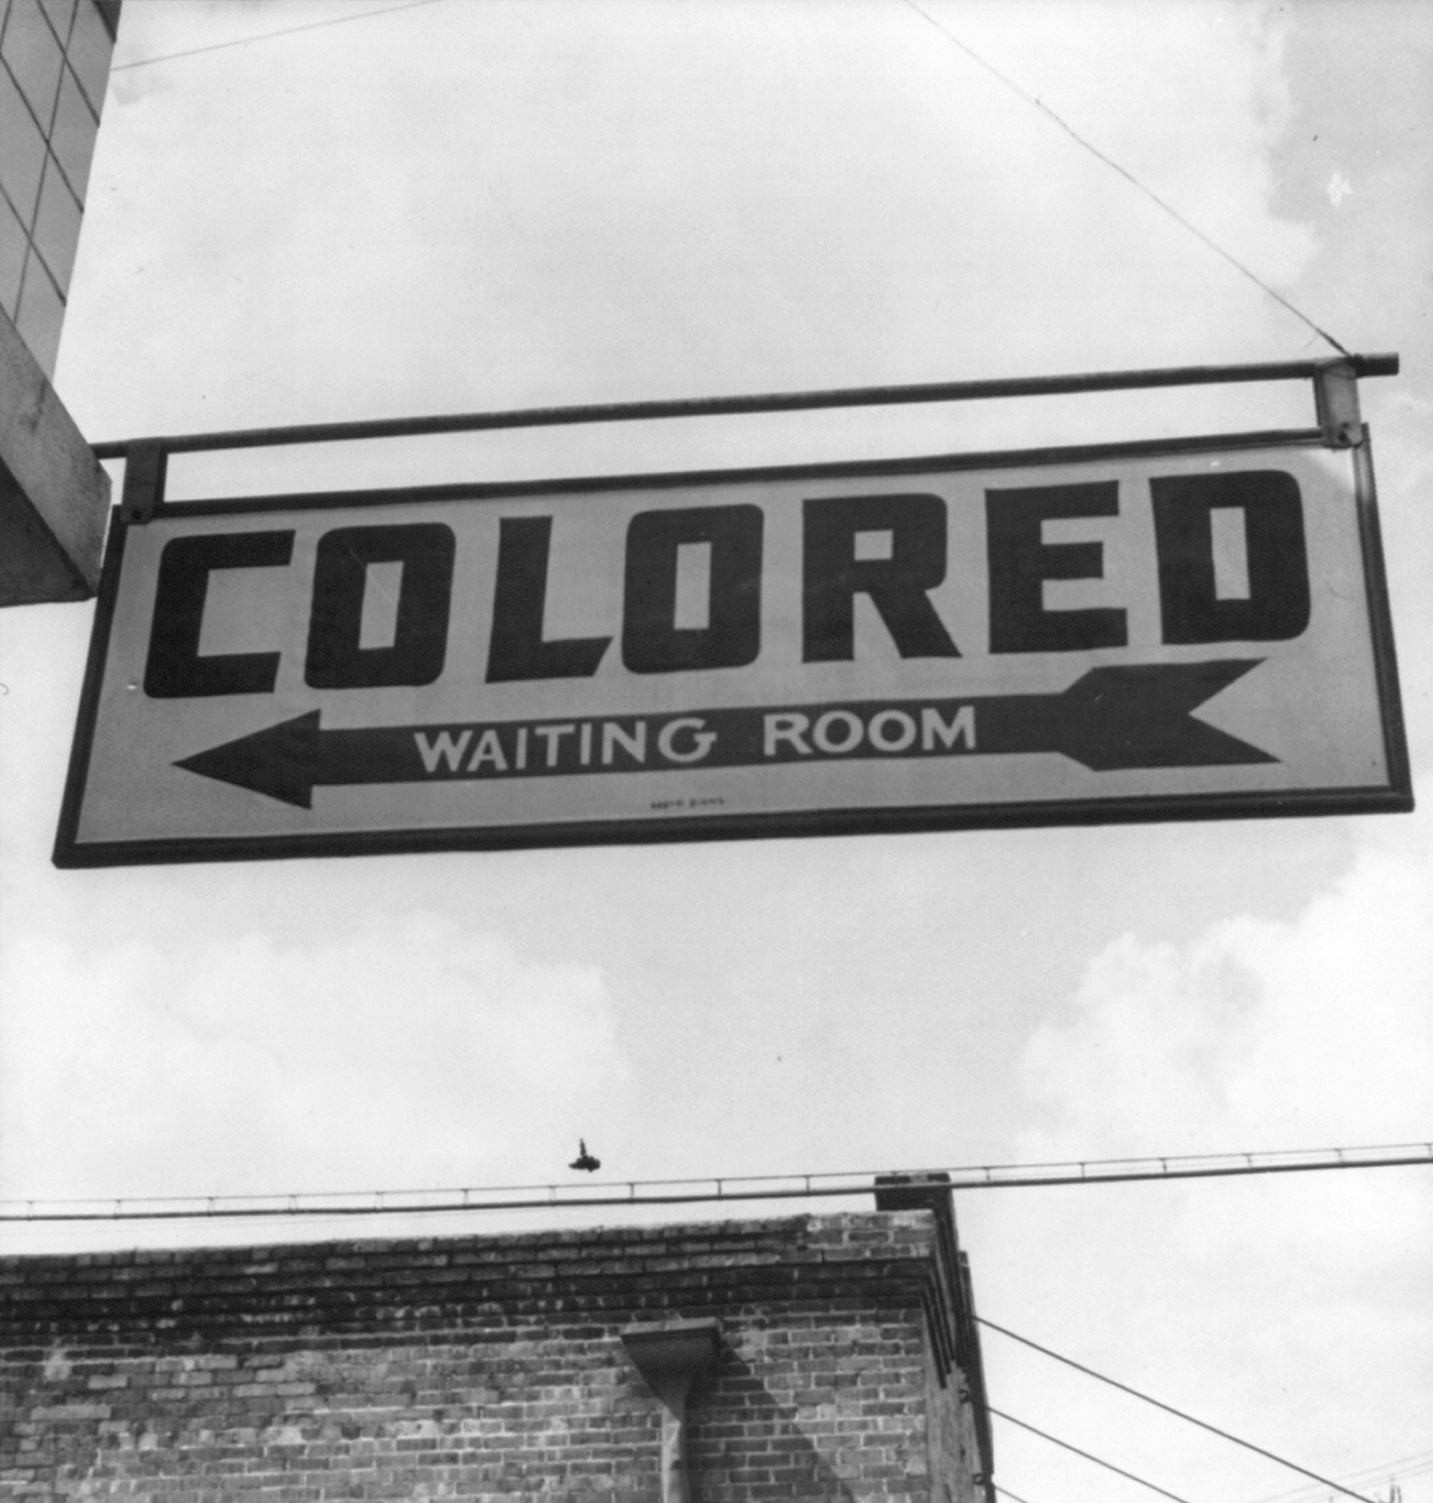 File:1943 Colored Waiting Room Sign.jpg